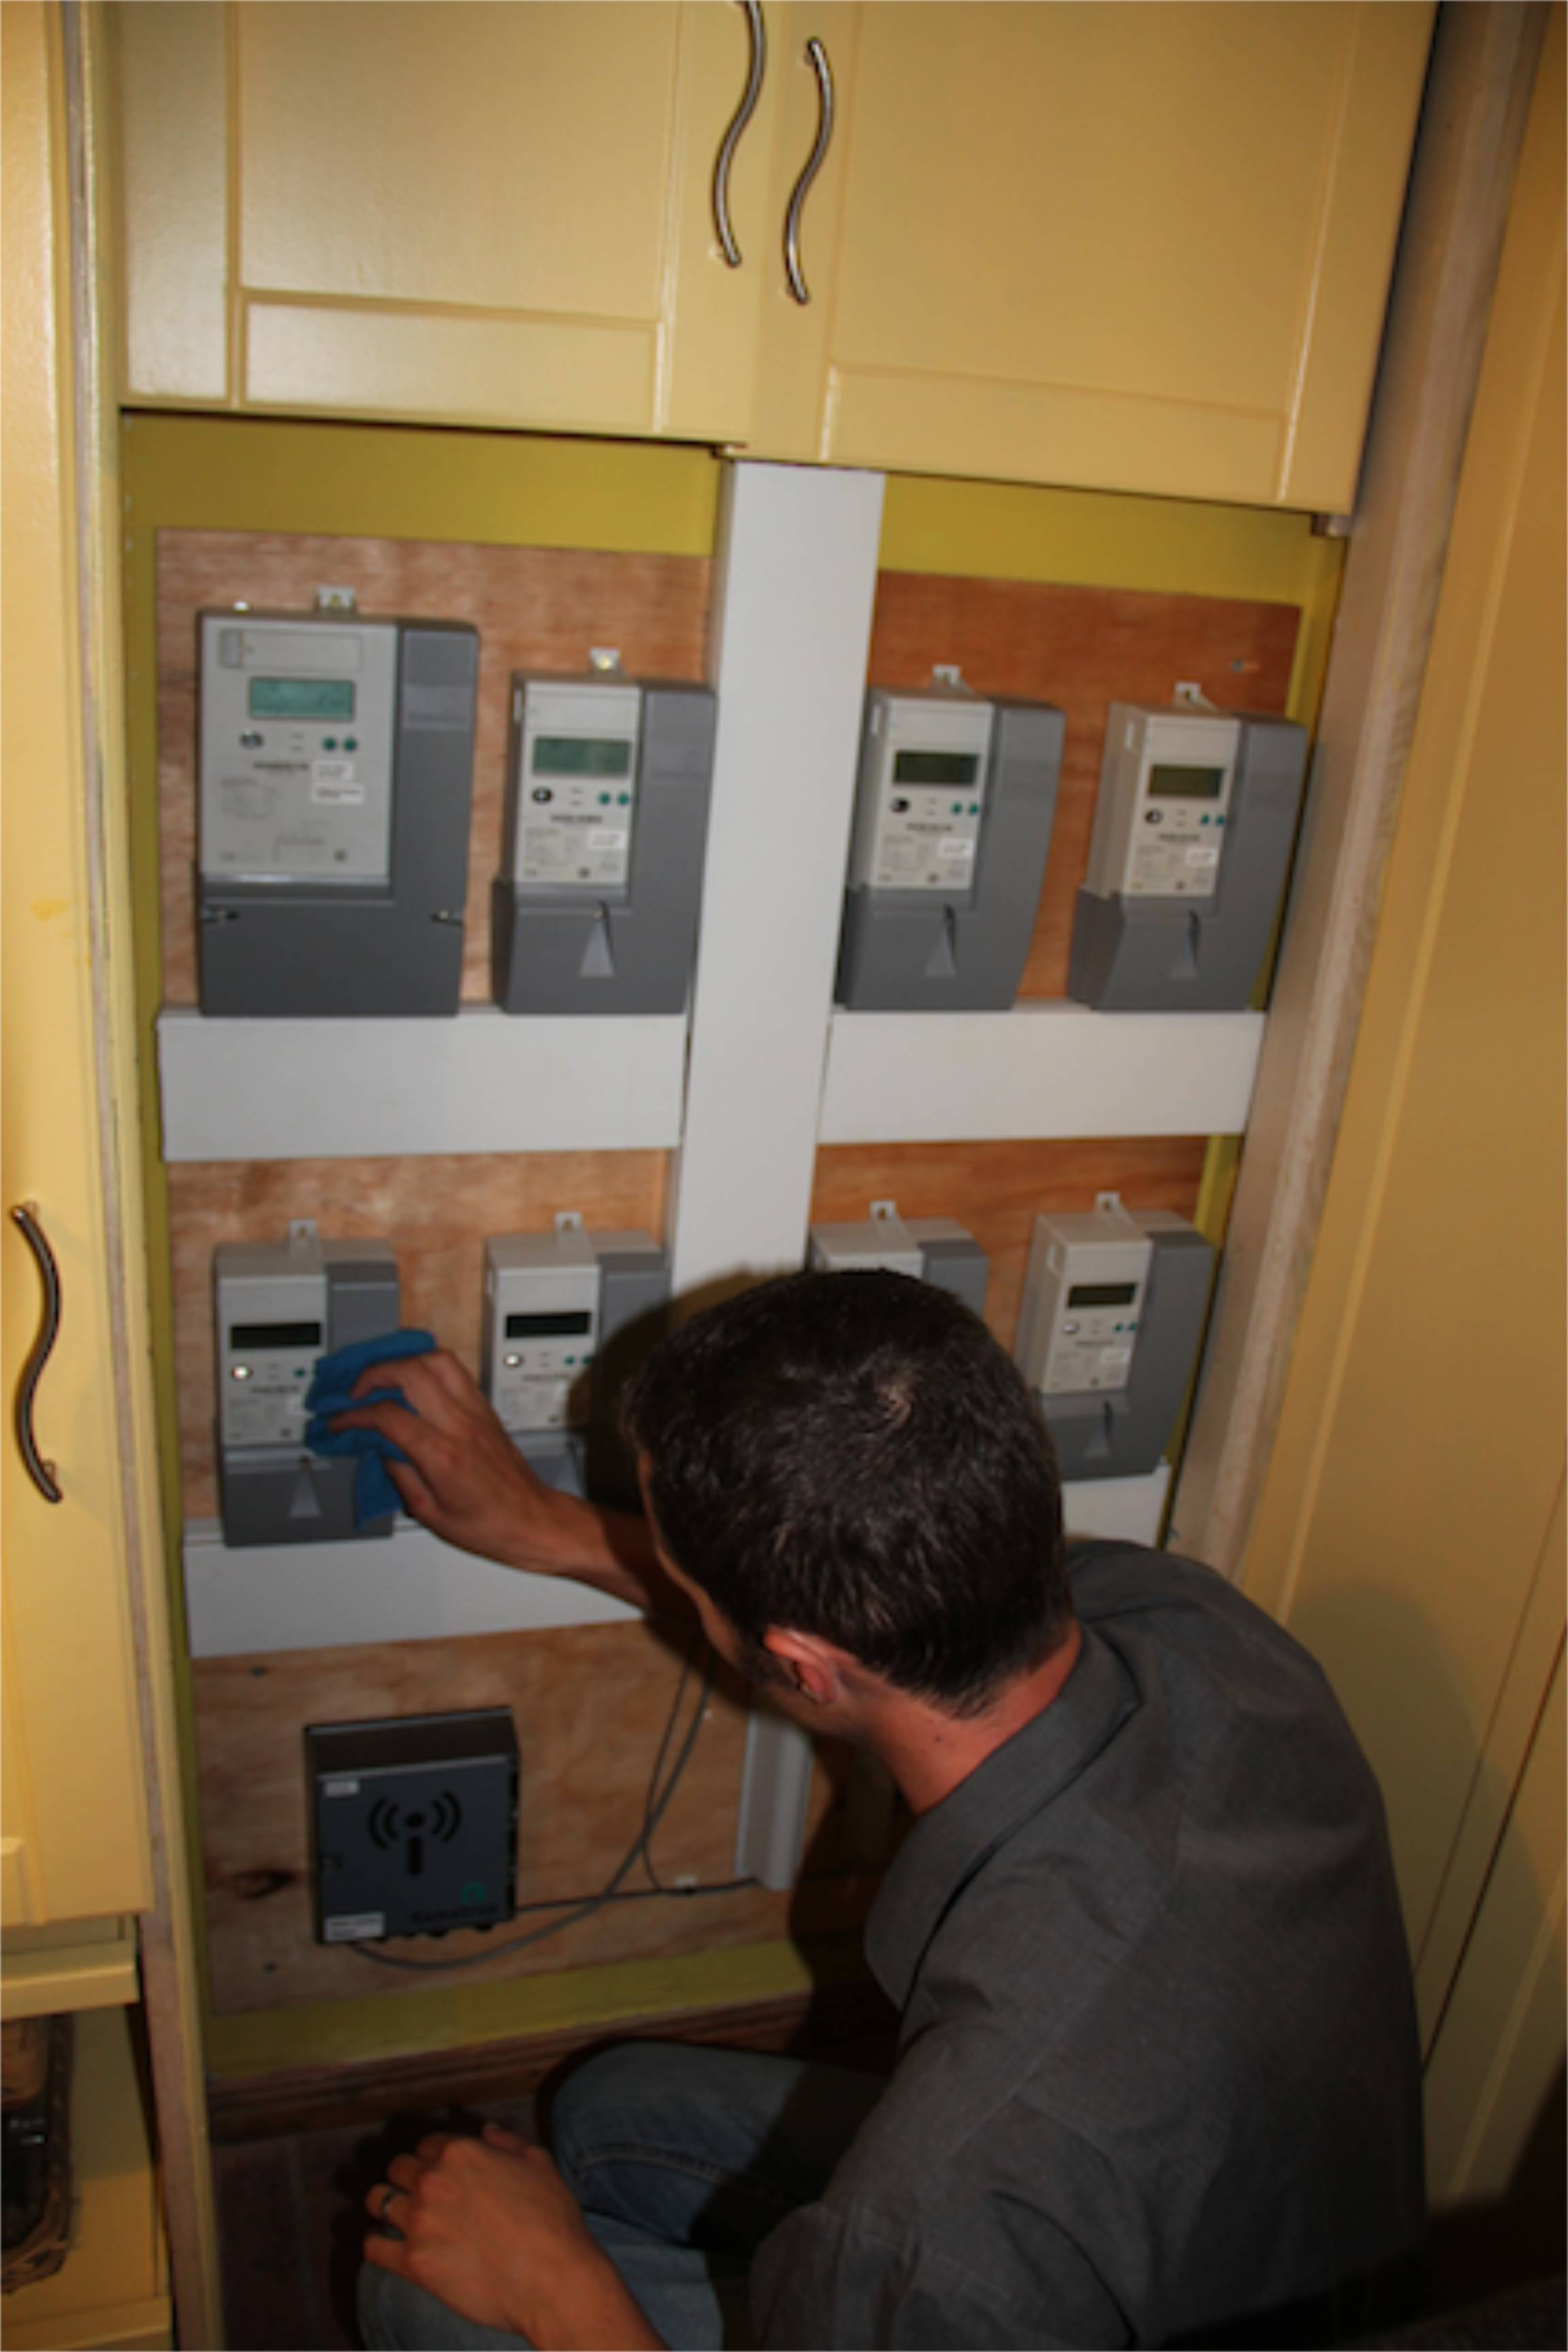 Installation of eight different meters for live energy monitoring.